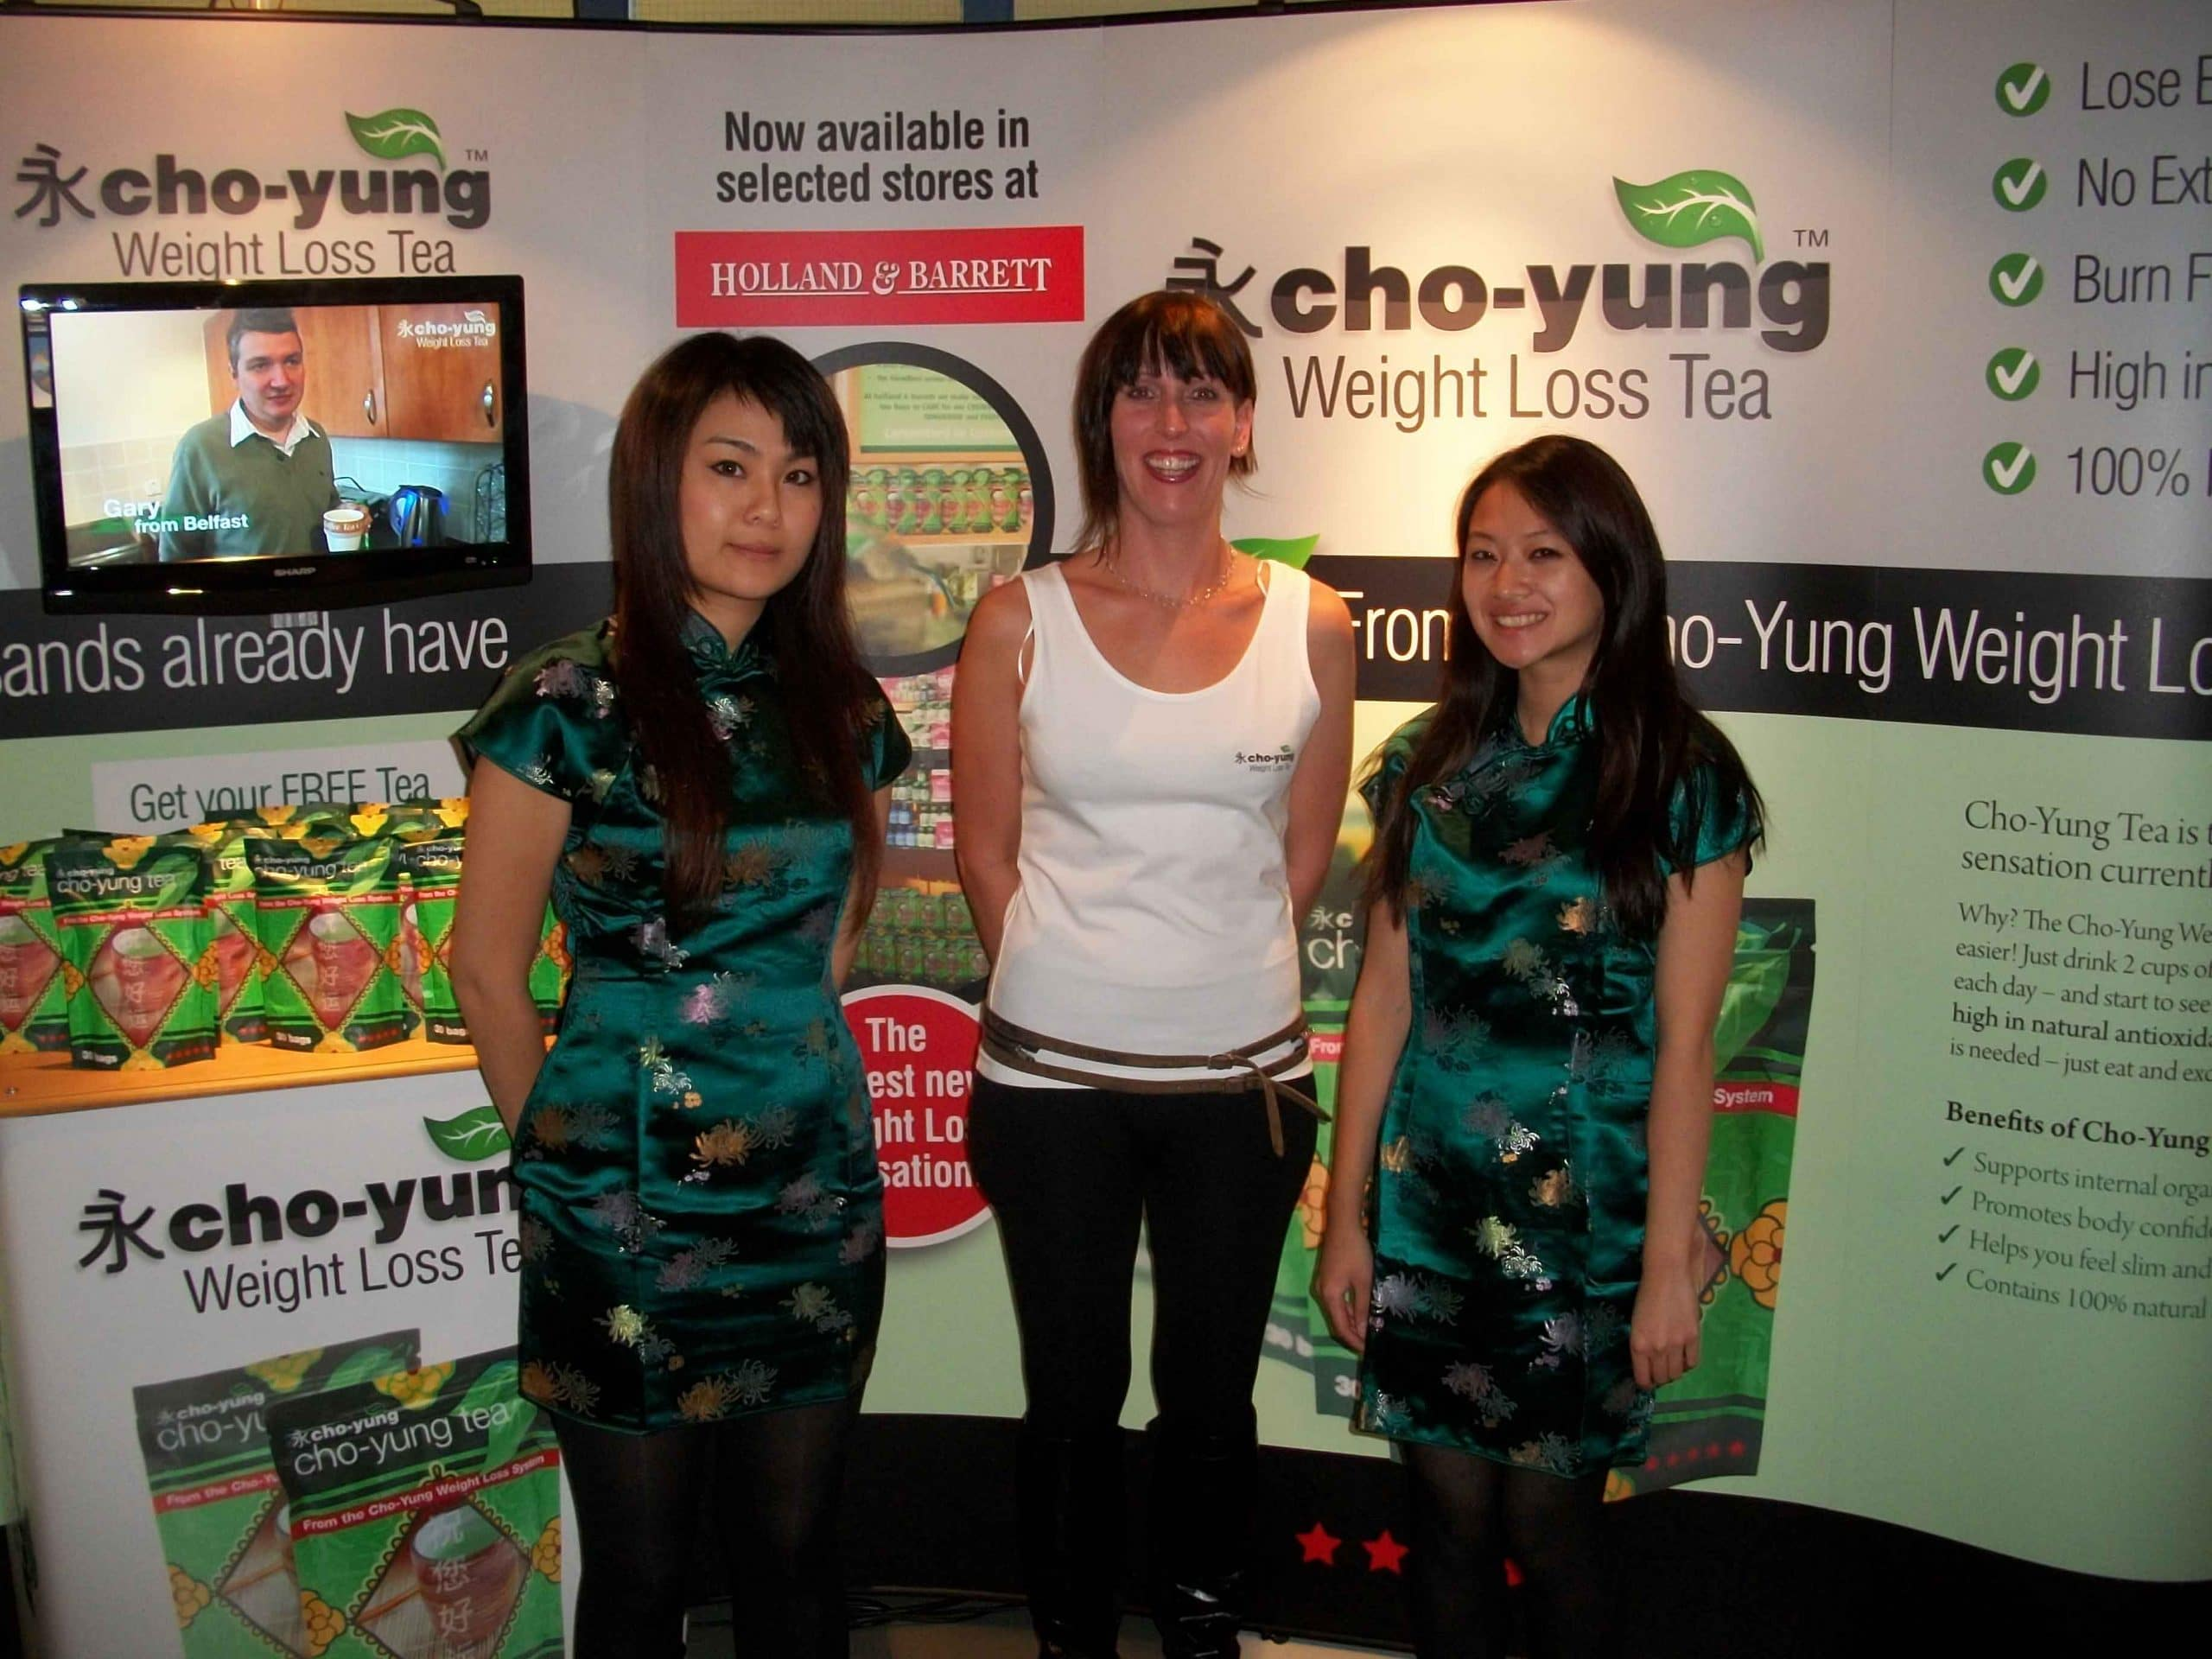 Low Chow Yung Chinese Weight Loss Tea Experiential Marketing Product Sampling, marketing campaign, active campaign, promotion, shopper marketing, event staffing